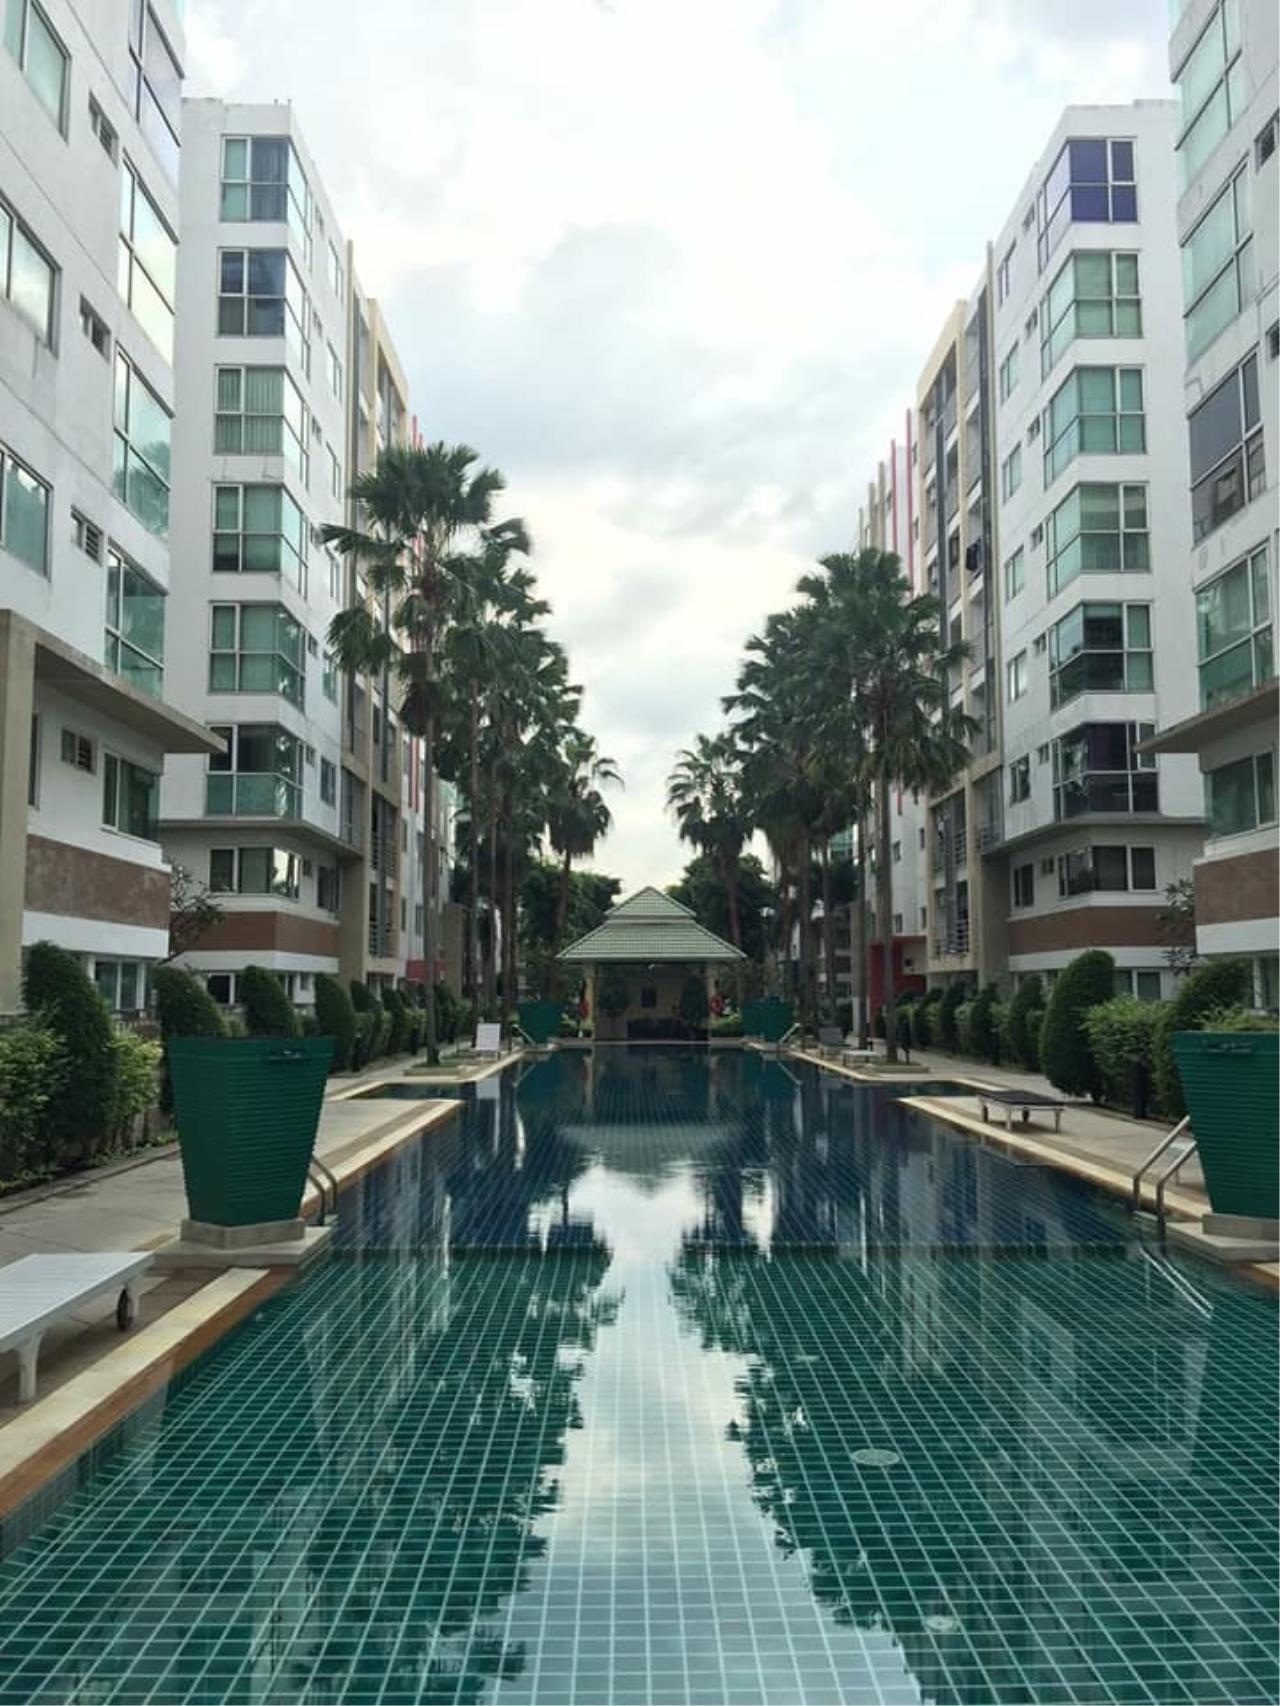 Agent Thawanrat Agency's Condo for sale Metro Park Sathorn  Near BTS.Bang Wa 1 bedroom,1 bathroom,1 Living room. size 57 sqm.Big room,Floor 6th.Sale price 1.99 MB. 17